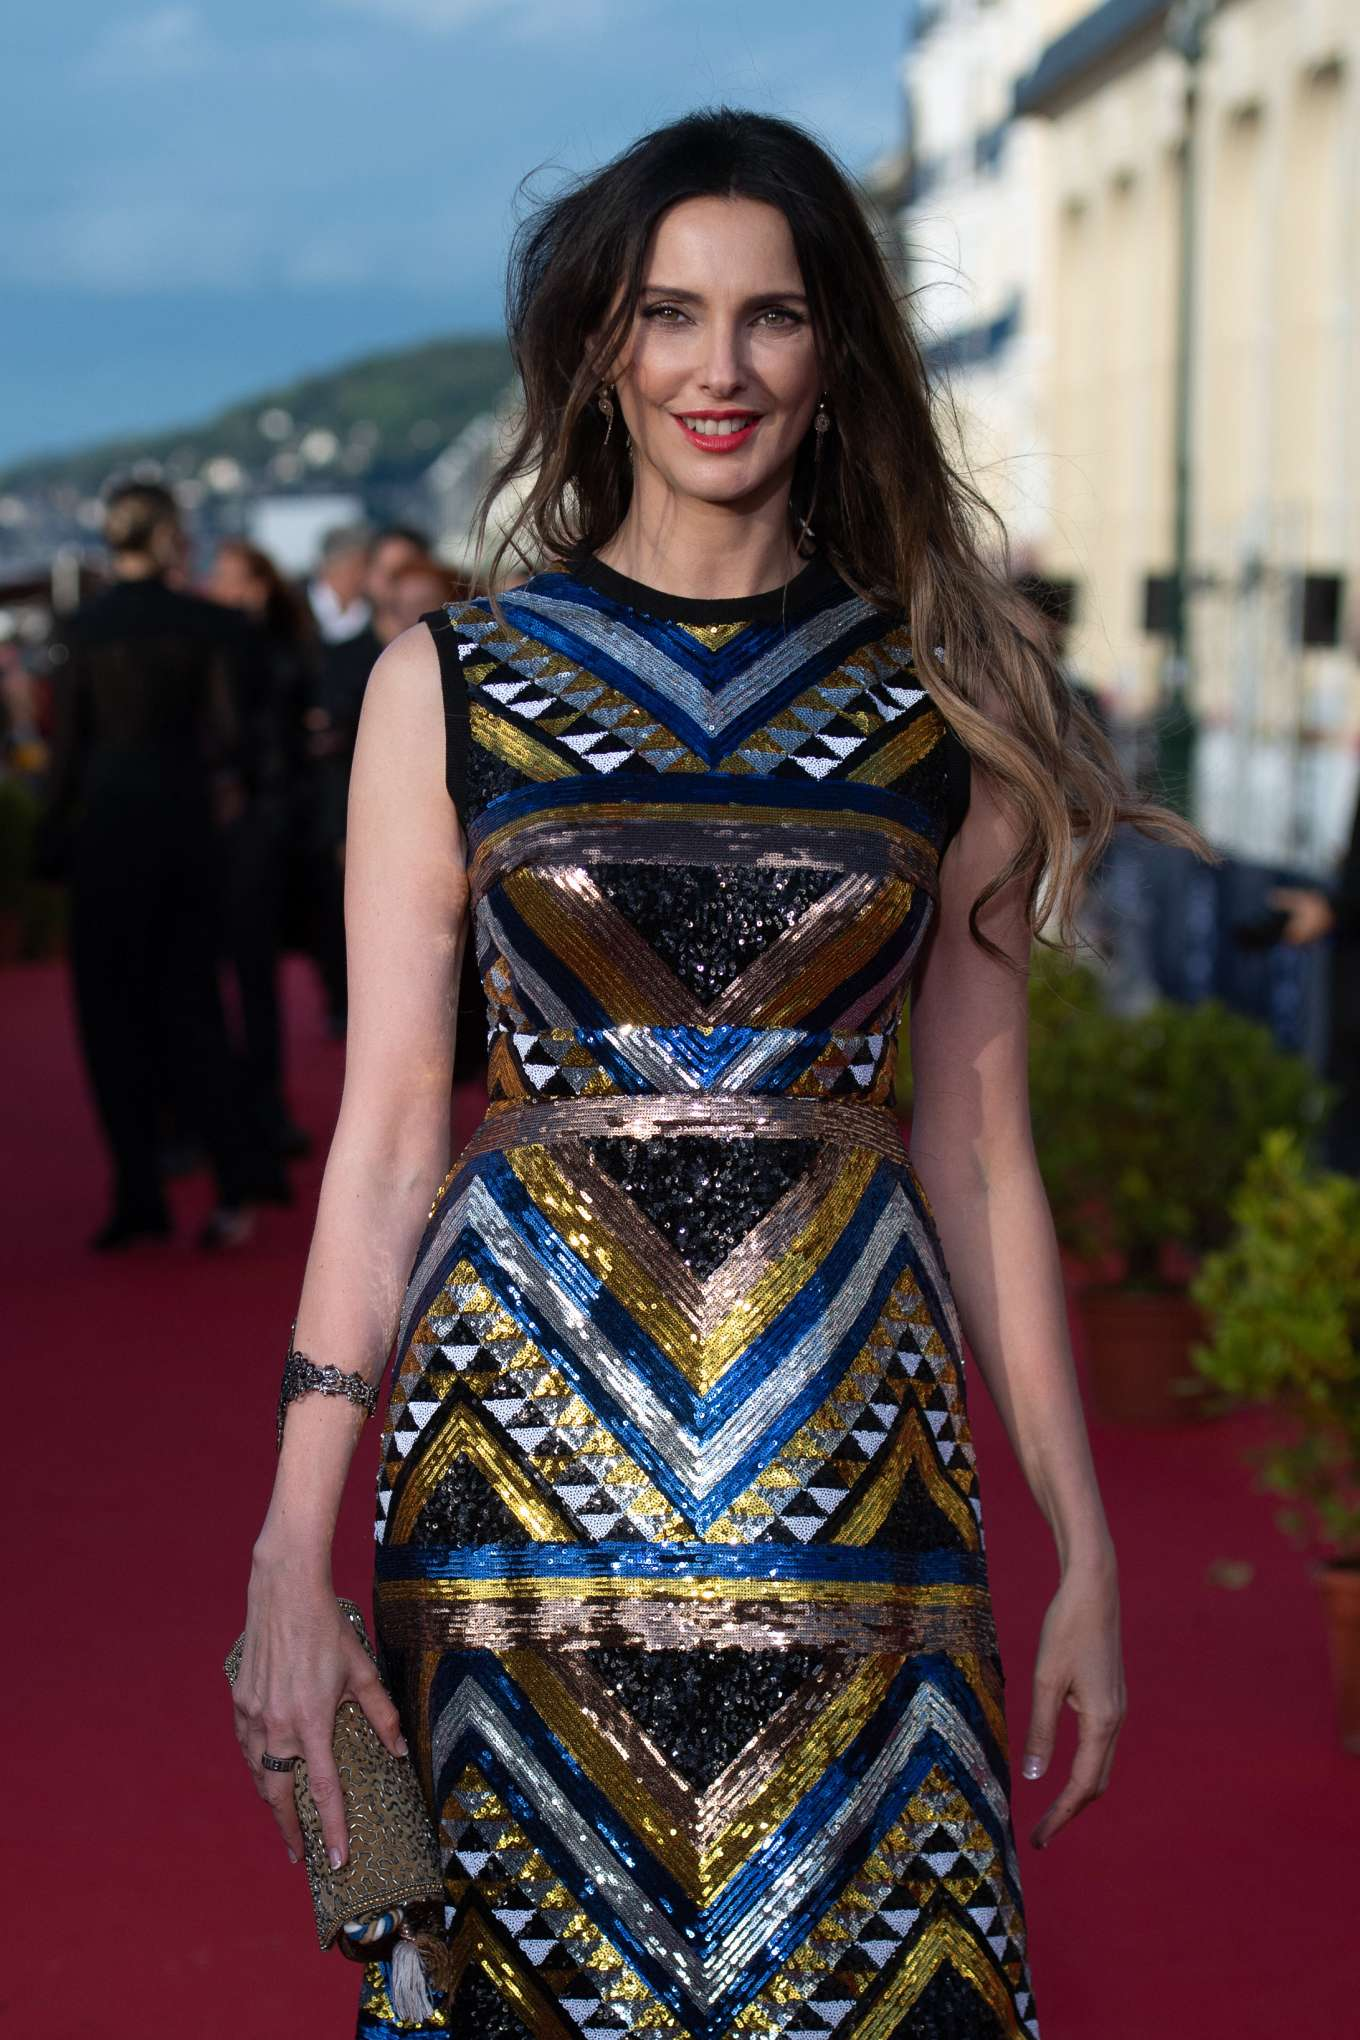 Frederique Bel - 33rd Cabourg Film Festival Day 4 in France